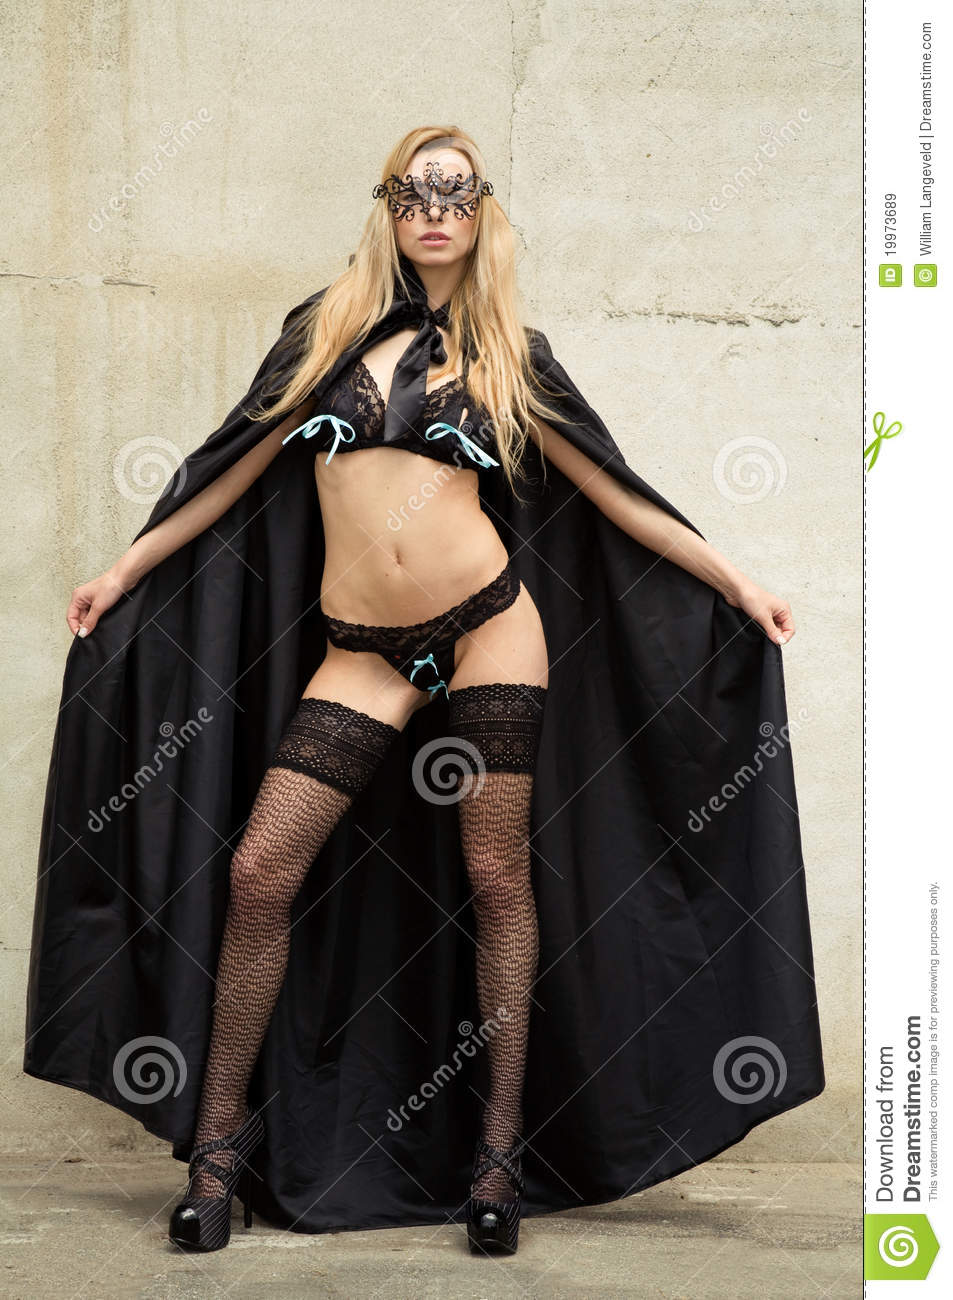 Kinky Beauty In Lingerie With Gotic Cape And Mask Stock